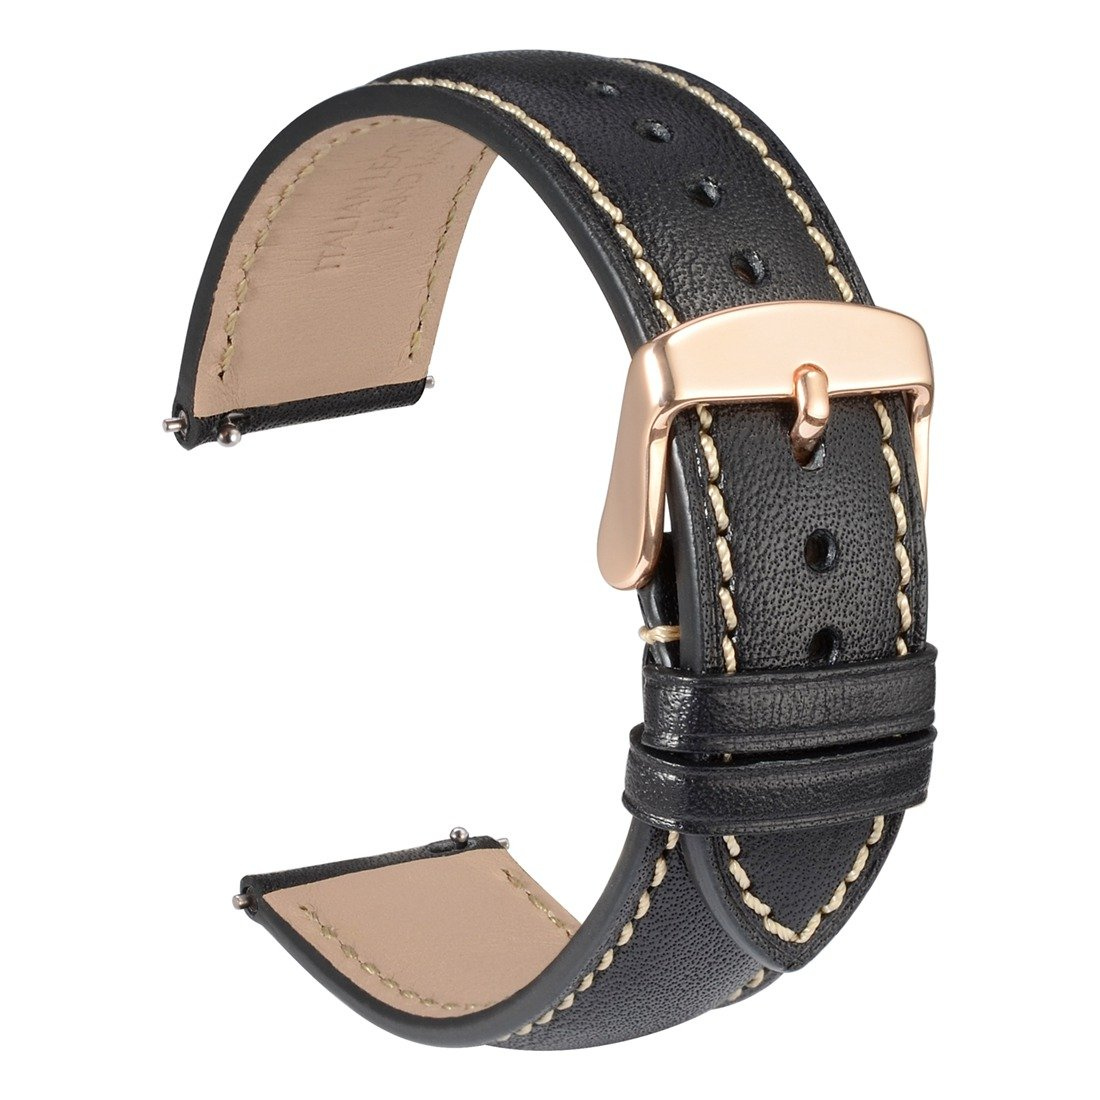 WOCCI 18mm Full Grain Leather Watch Band with Rose Gold Buckle, Quick Release Strap(Black with Contrasting Seam)